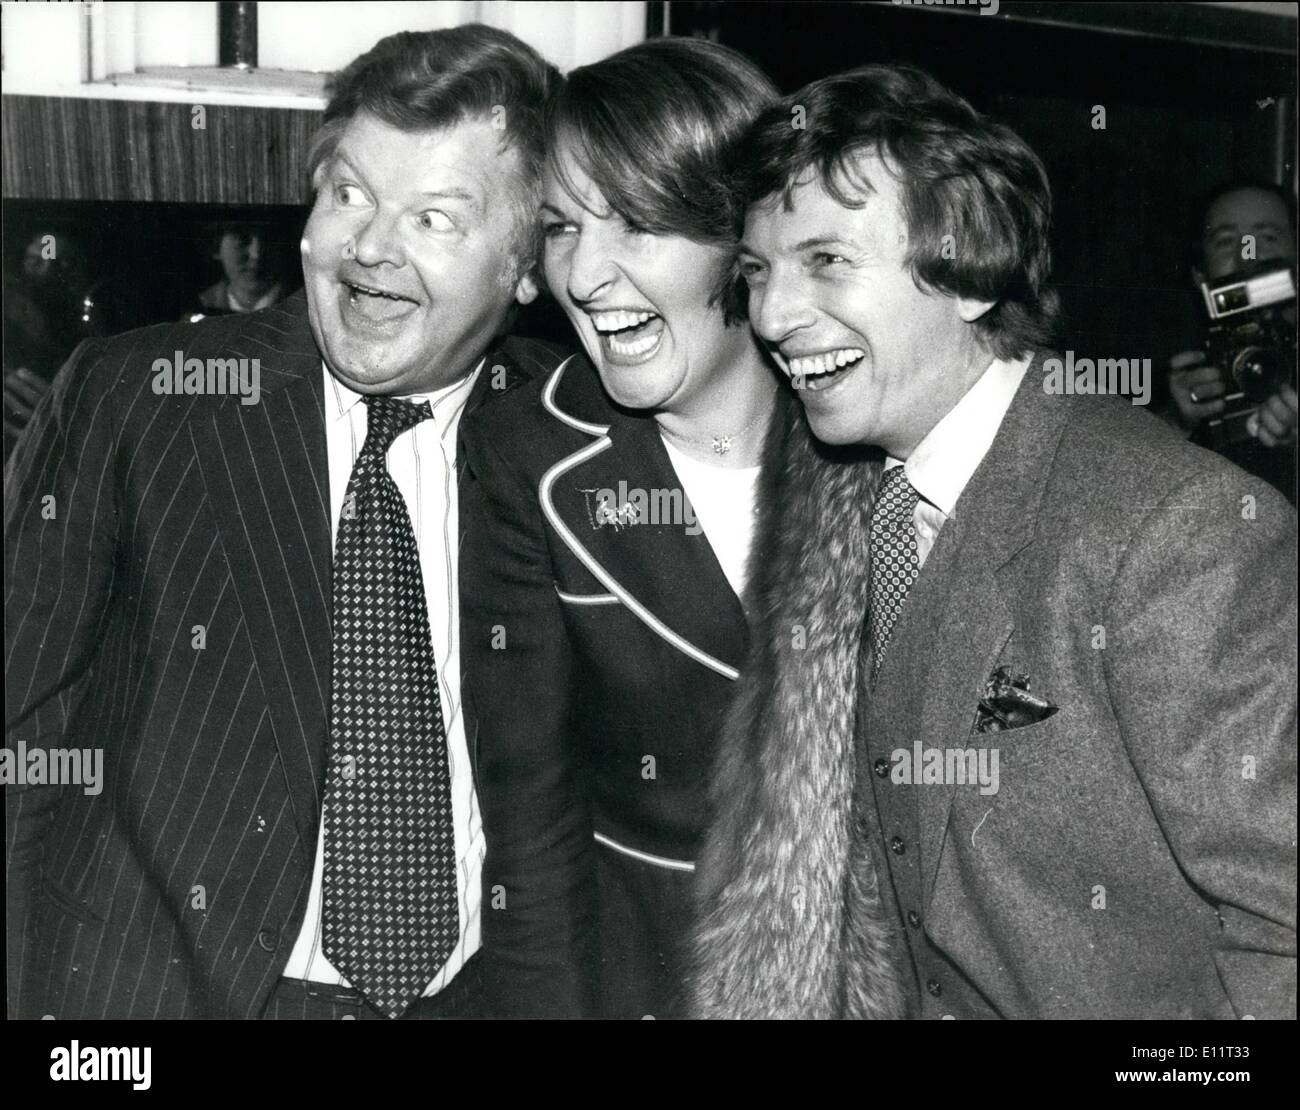 Feb. 02, 1980 - TOMMY STEEIE IS SHOW BUSINESS PERSONALITY OP 1575 TOMMY STEELE was named Show Business Personality of 1979 by the Variety Club of Great Britain at its 28th annual Show Businees Awards lunoheon held at the Savoy Hotel today. PHOTO SHOWS: Seen during the luncheon, Benny Hill(BBC TV Personality ) and Penelope Keith pictured during the luncheon today. - Stock Image